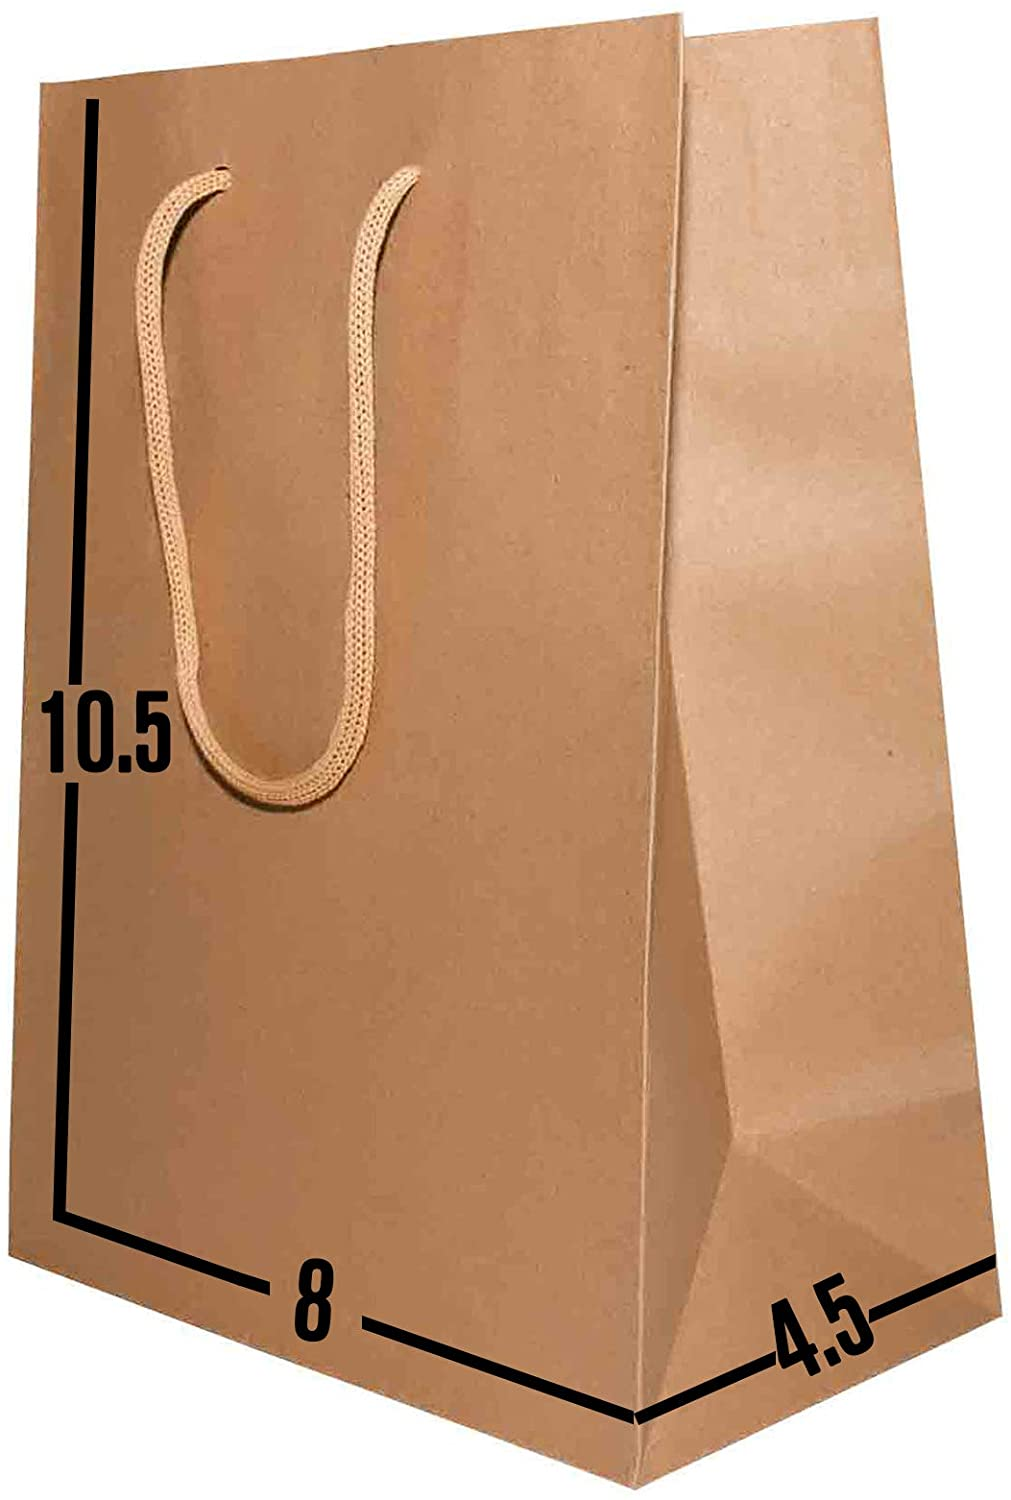 Kraft Paper Gift Bags Bulk with Handles 8 X 4.5 X 10.5. Ideal for Shopping, Packaging, Retail, Party, Craft, Gifts, Wedding, Recycled, Business, Goody and Merchandise Bag (Brown Rope Handles, 50 Bags)